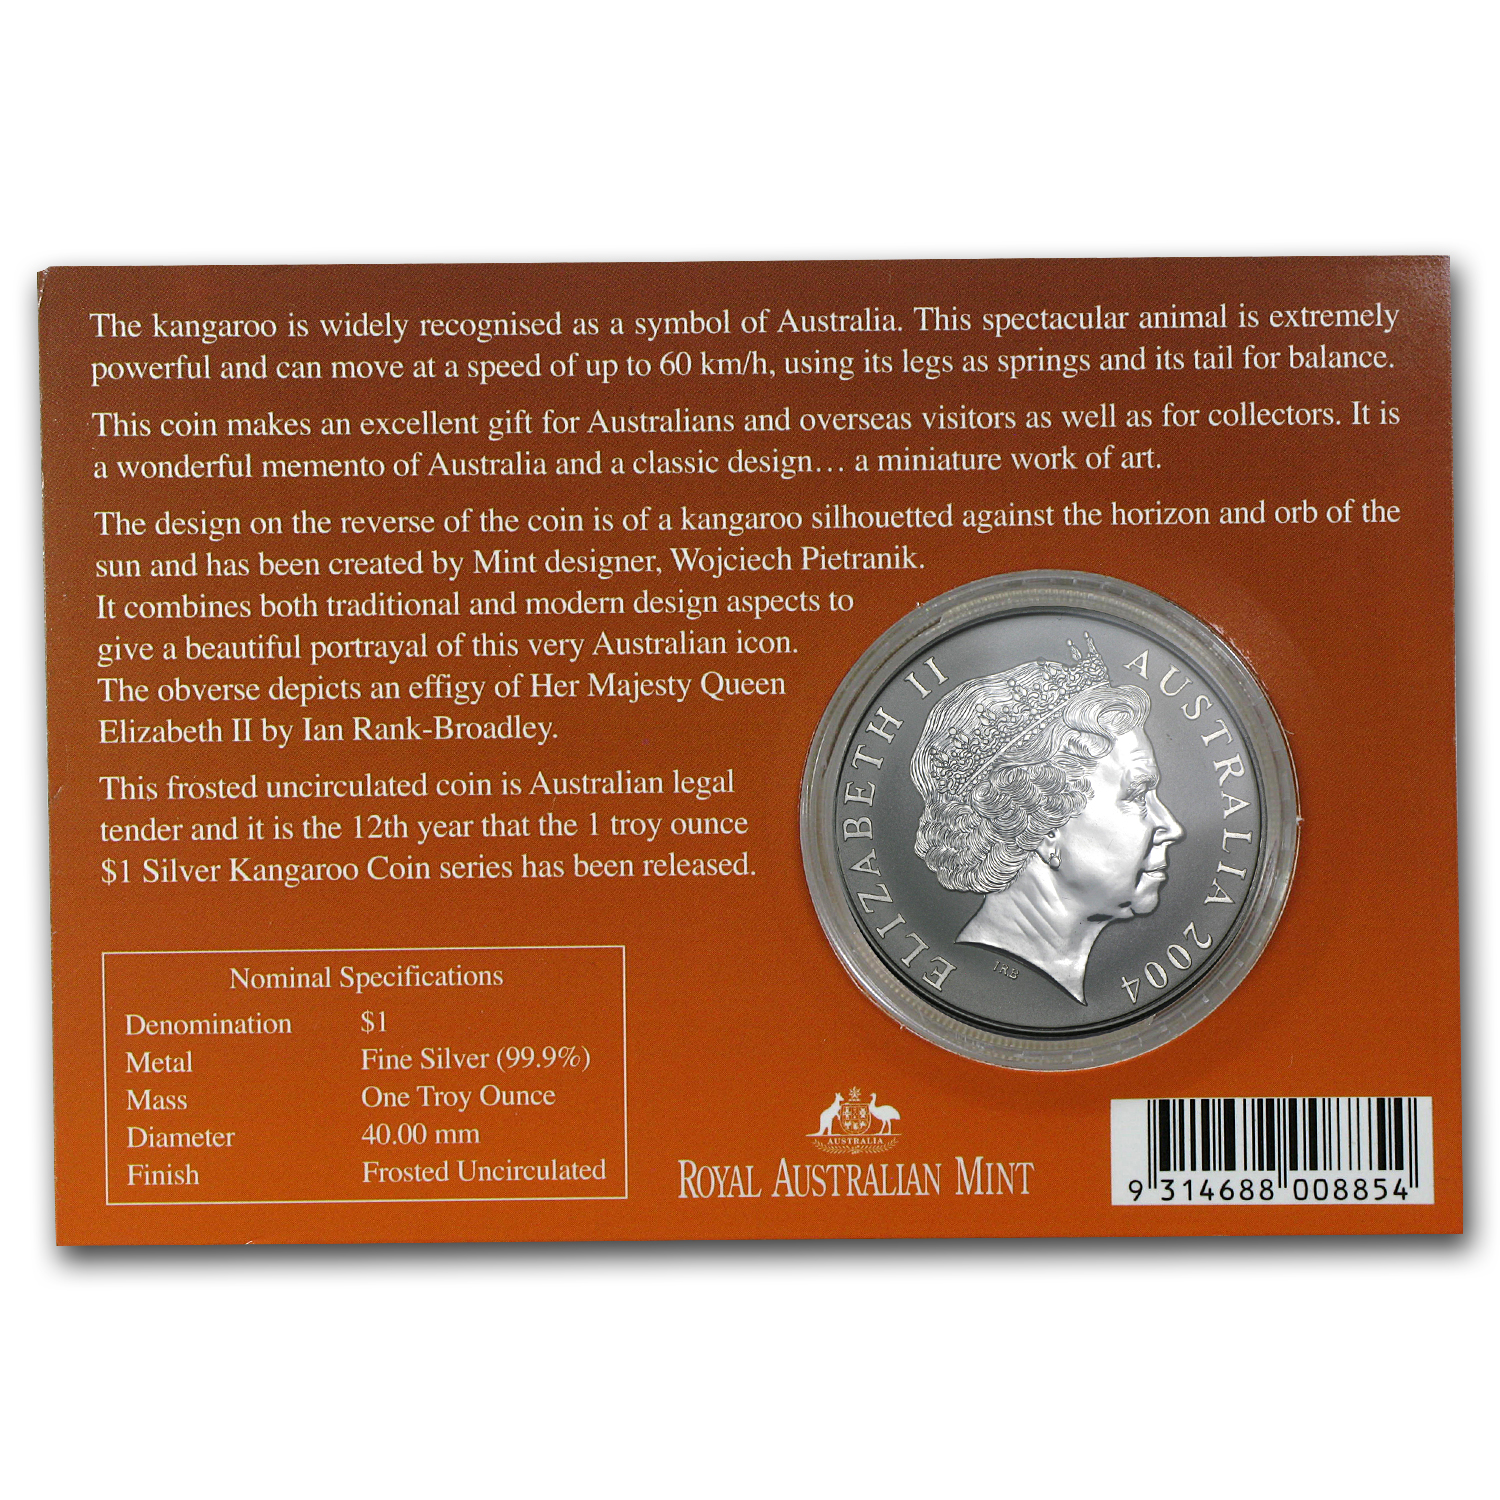 2004 1 oz Australian Silver Kangaroo (In Display Card)